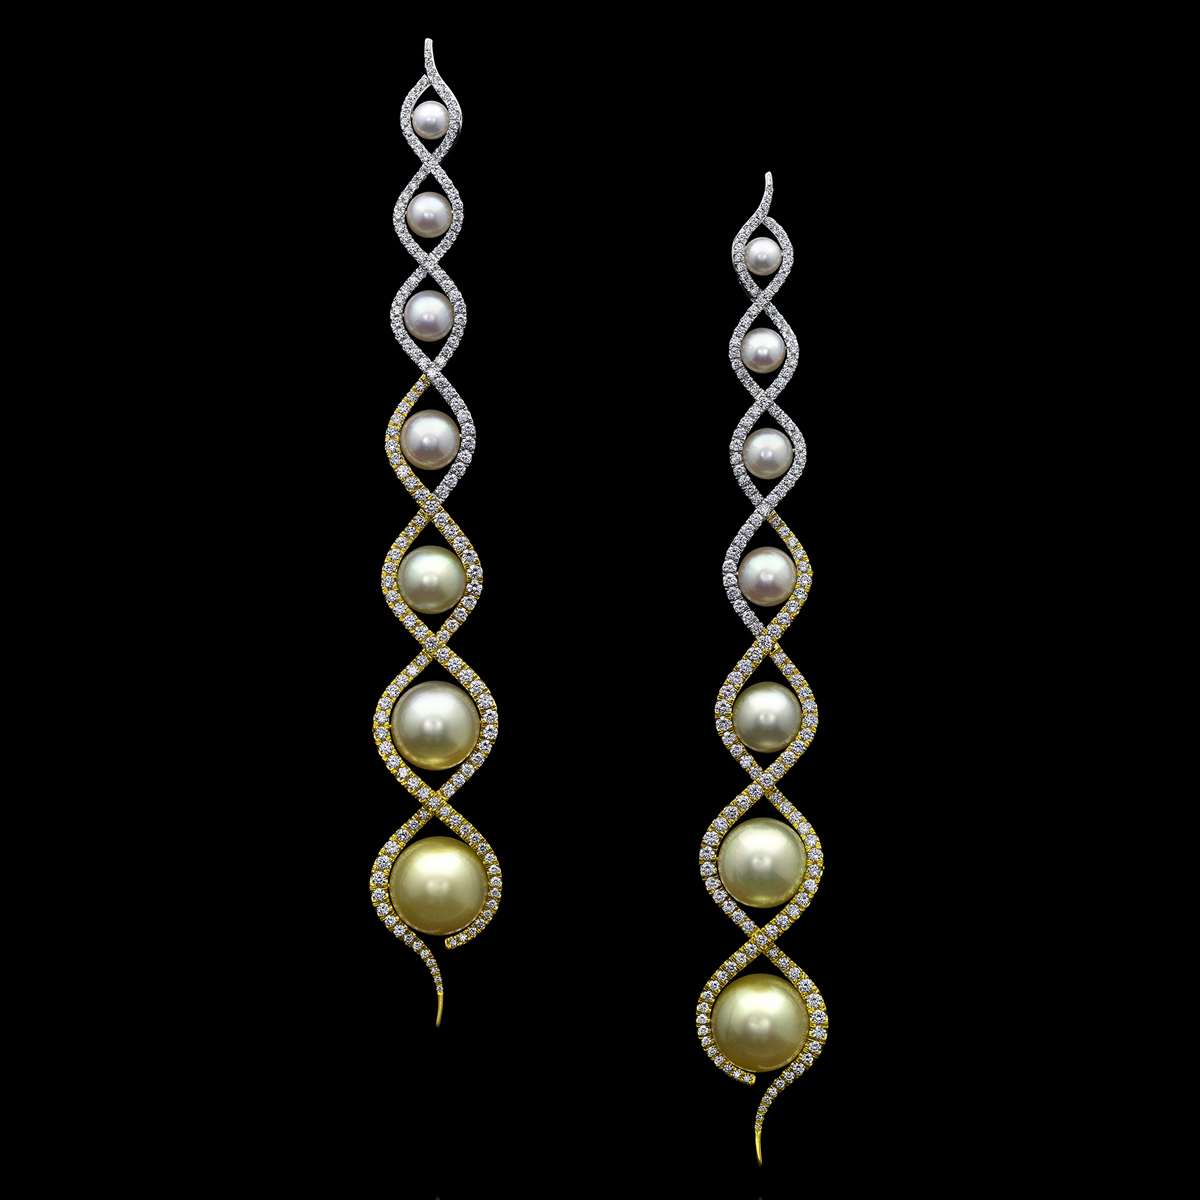 South Sea Pearl Diamond Earrings Rivoli